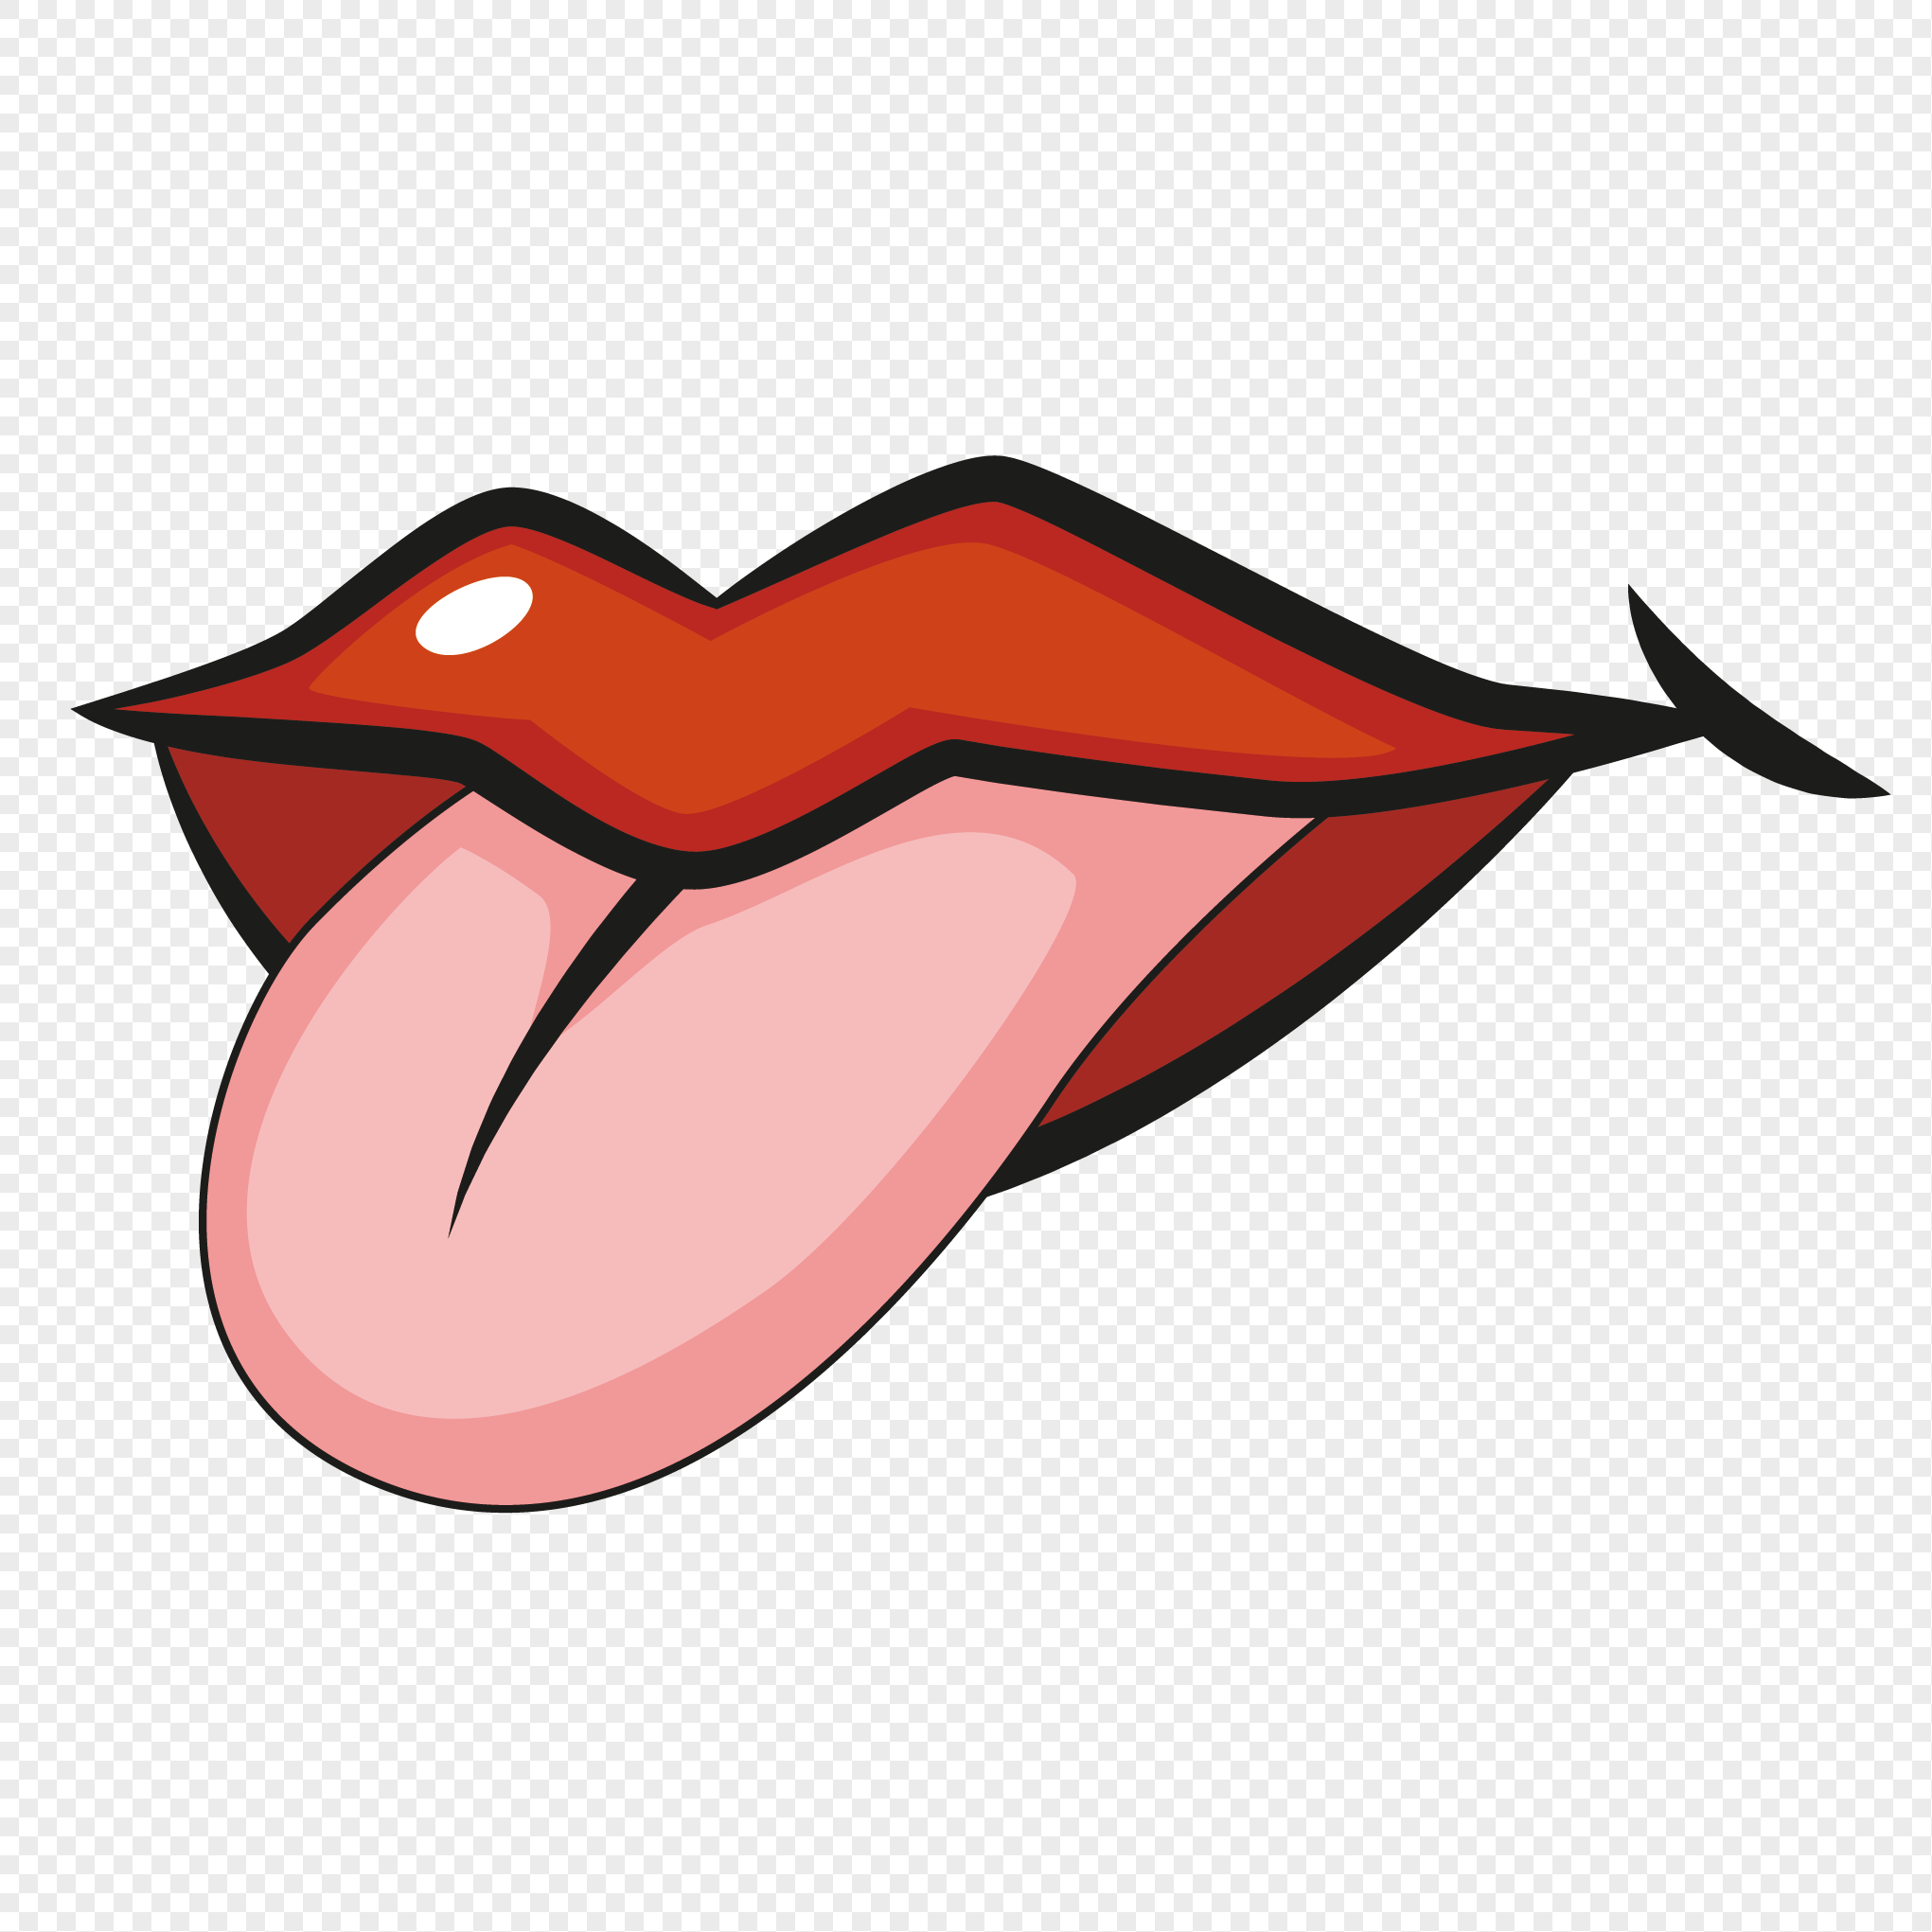 Free Png Sticking Tongue Out & Free Sticking Tongue Out.png.